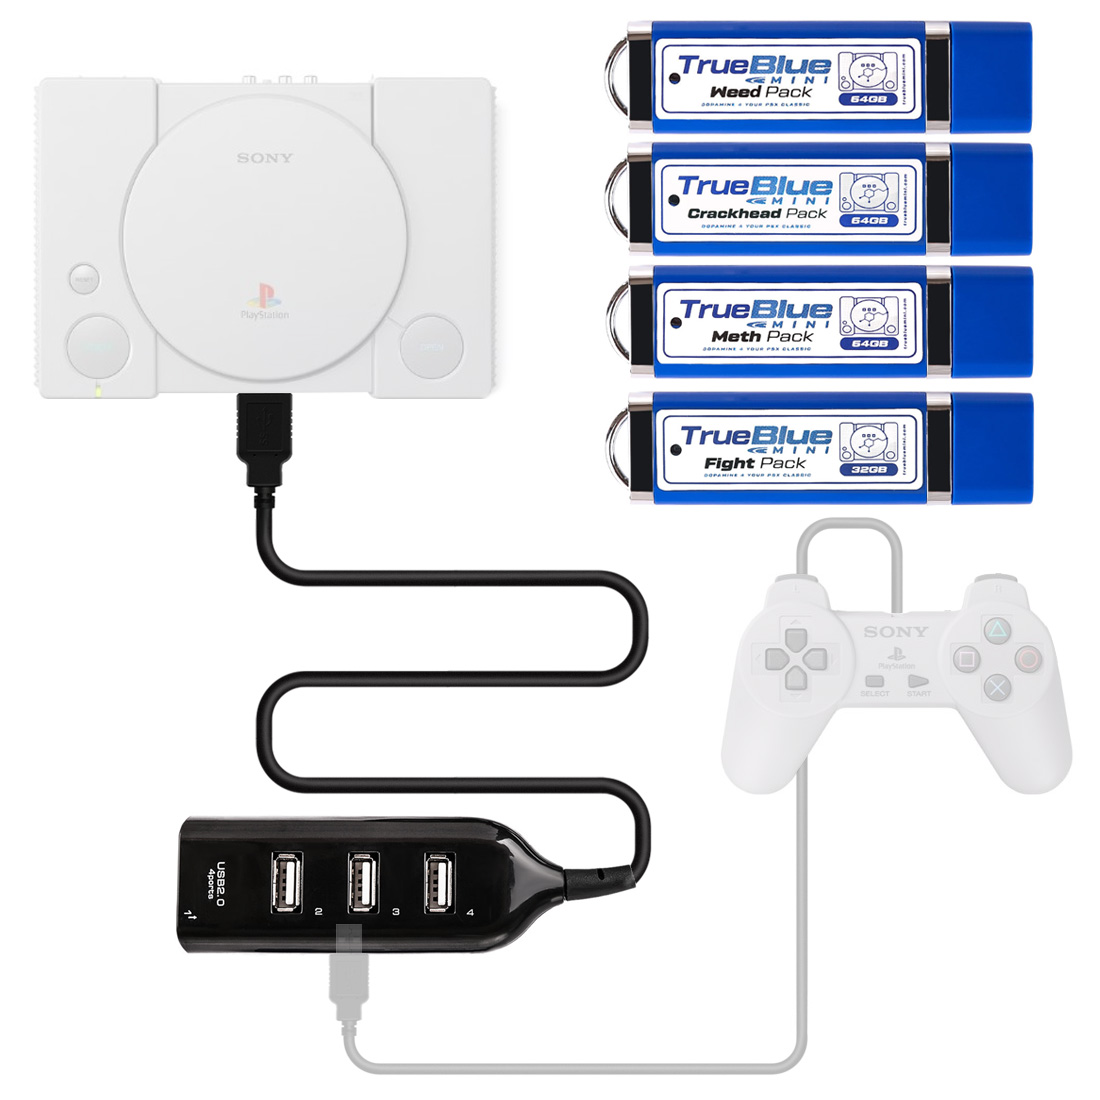 3-Pack (Crackhead Pack + Meth Pack + Fight Pack ) True Blue Mini USB Sticks Plug & Play for PlayStation Classic